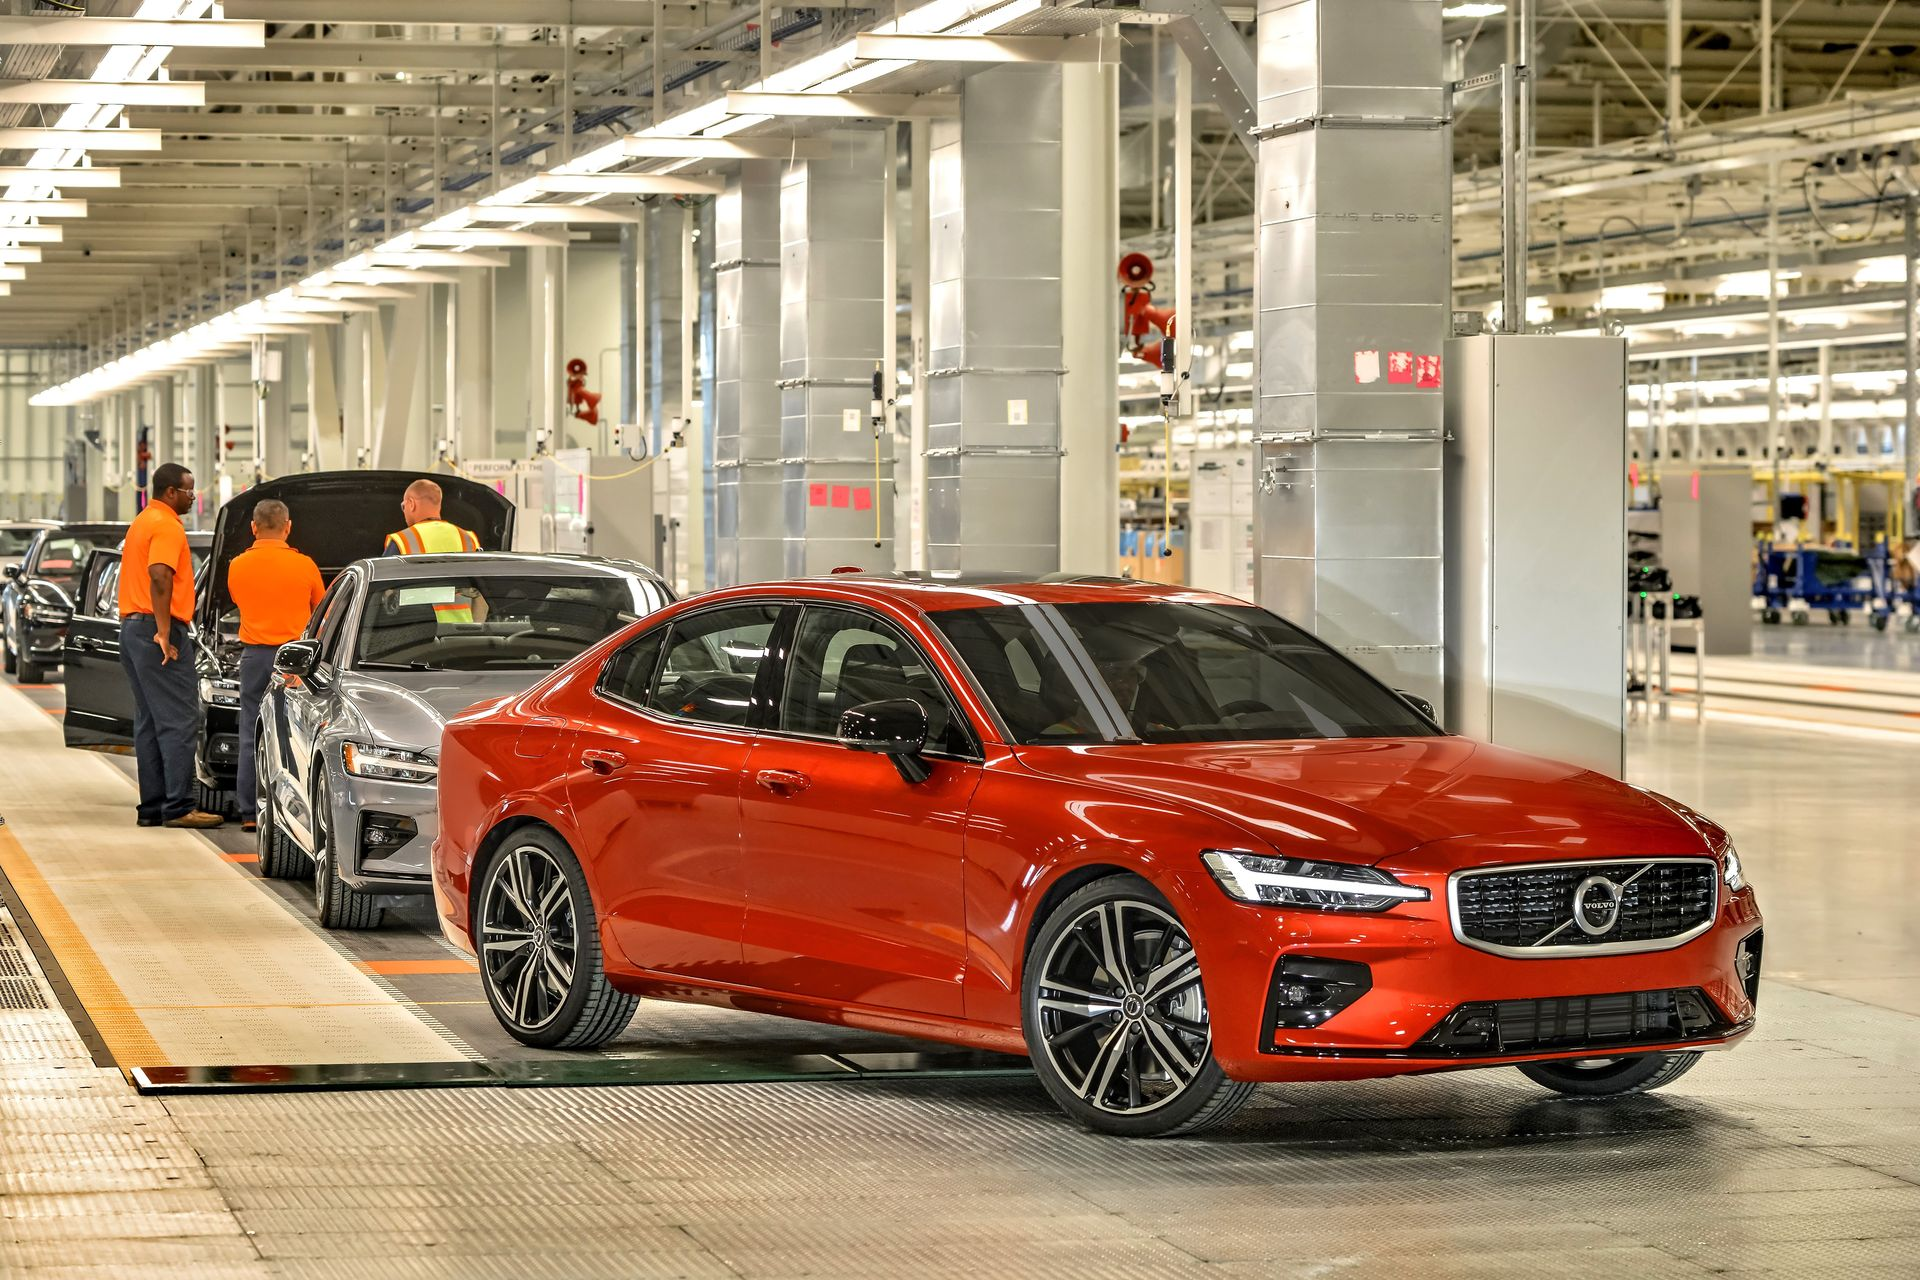 new s60 is the first volvo that's made in the usa | volvo jo